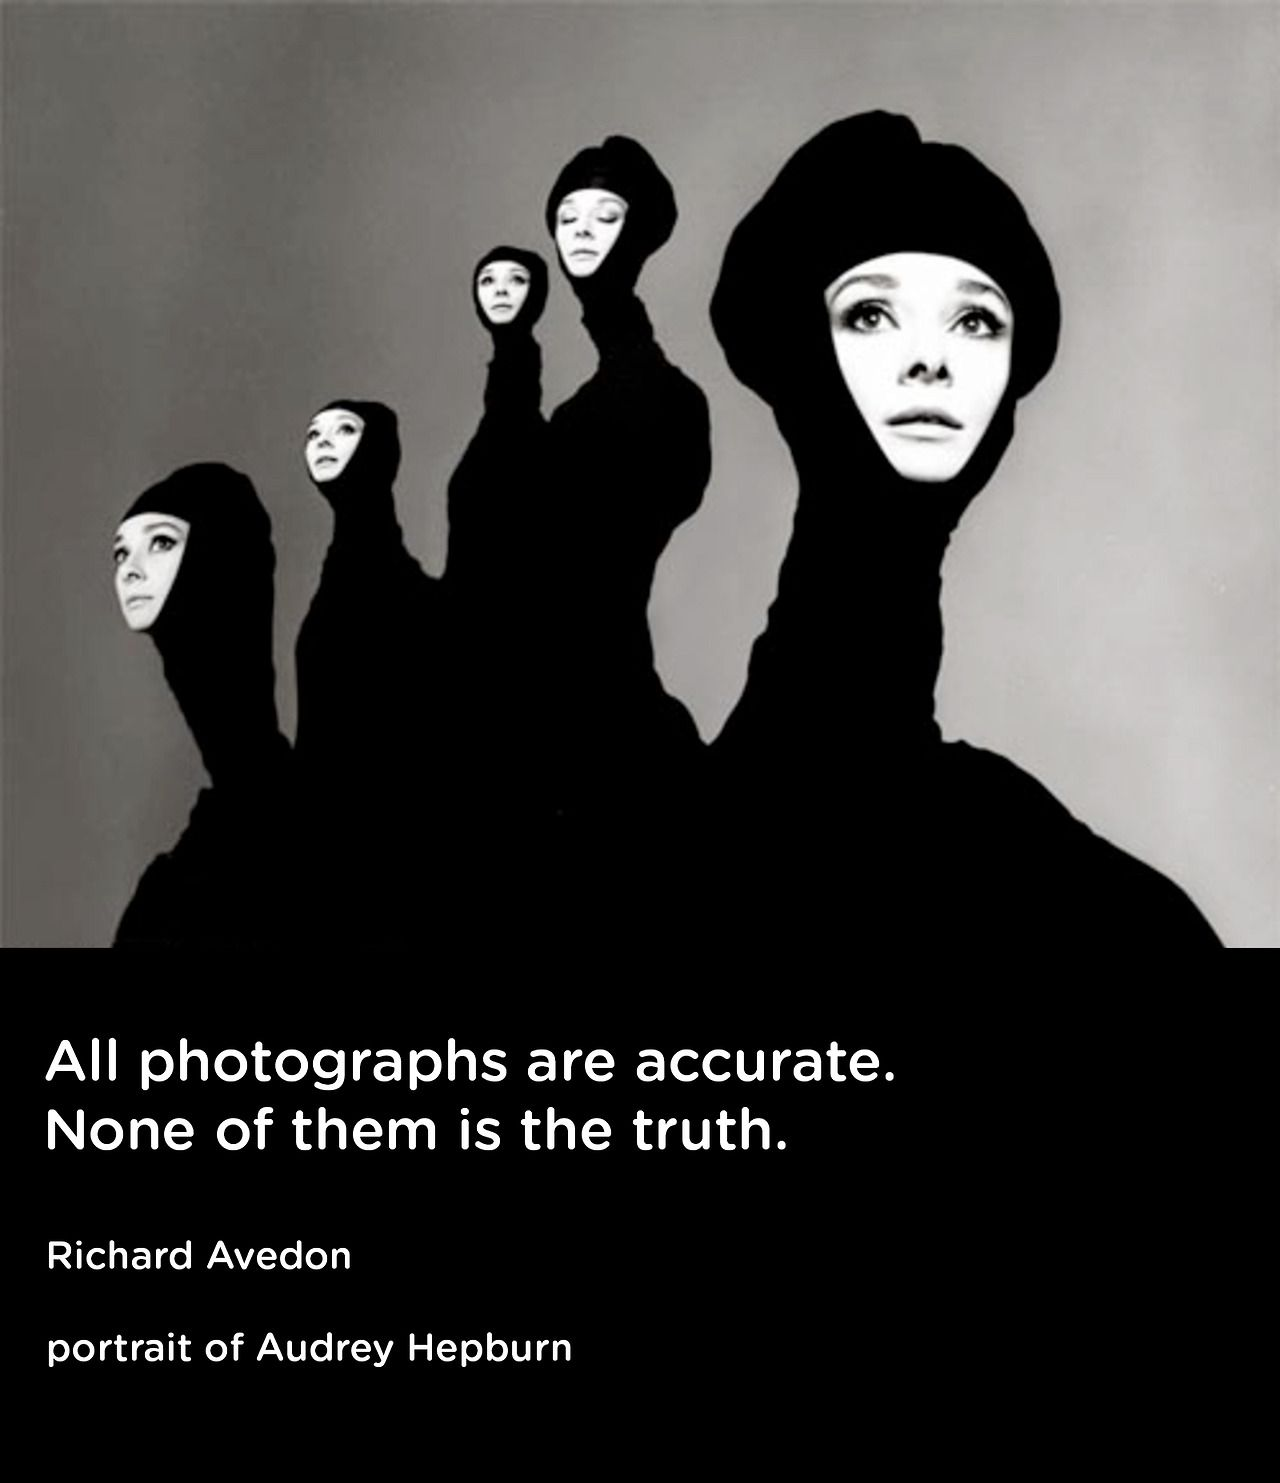 All photographs are accurate none of them is the truth richard avedon portrait of audrey hepburn